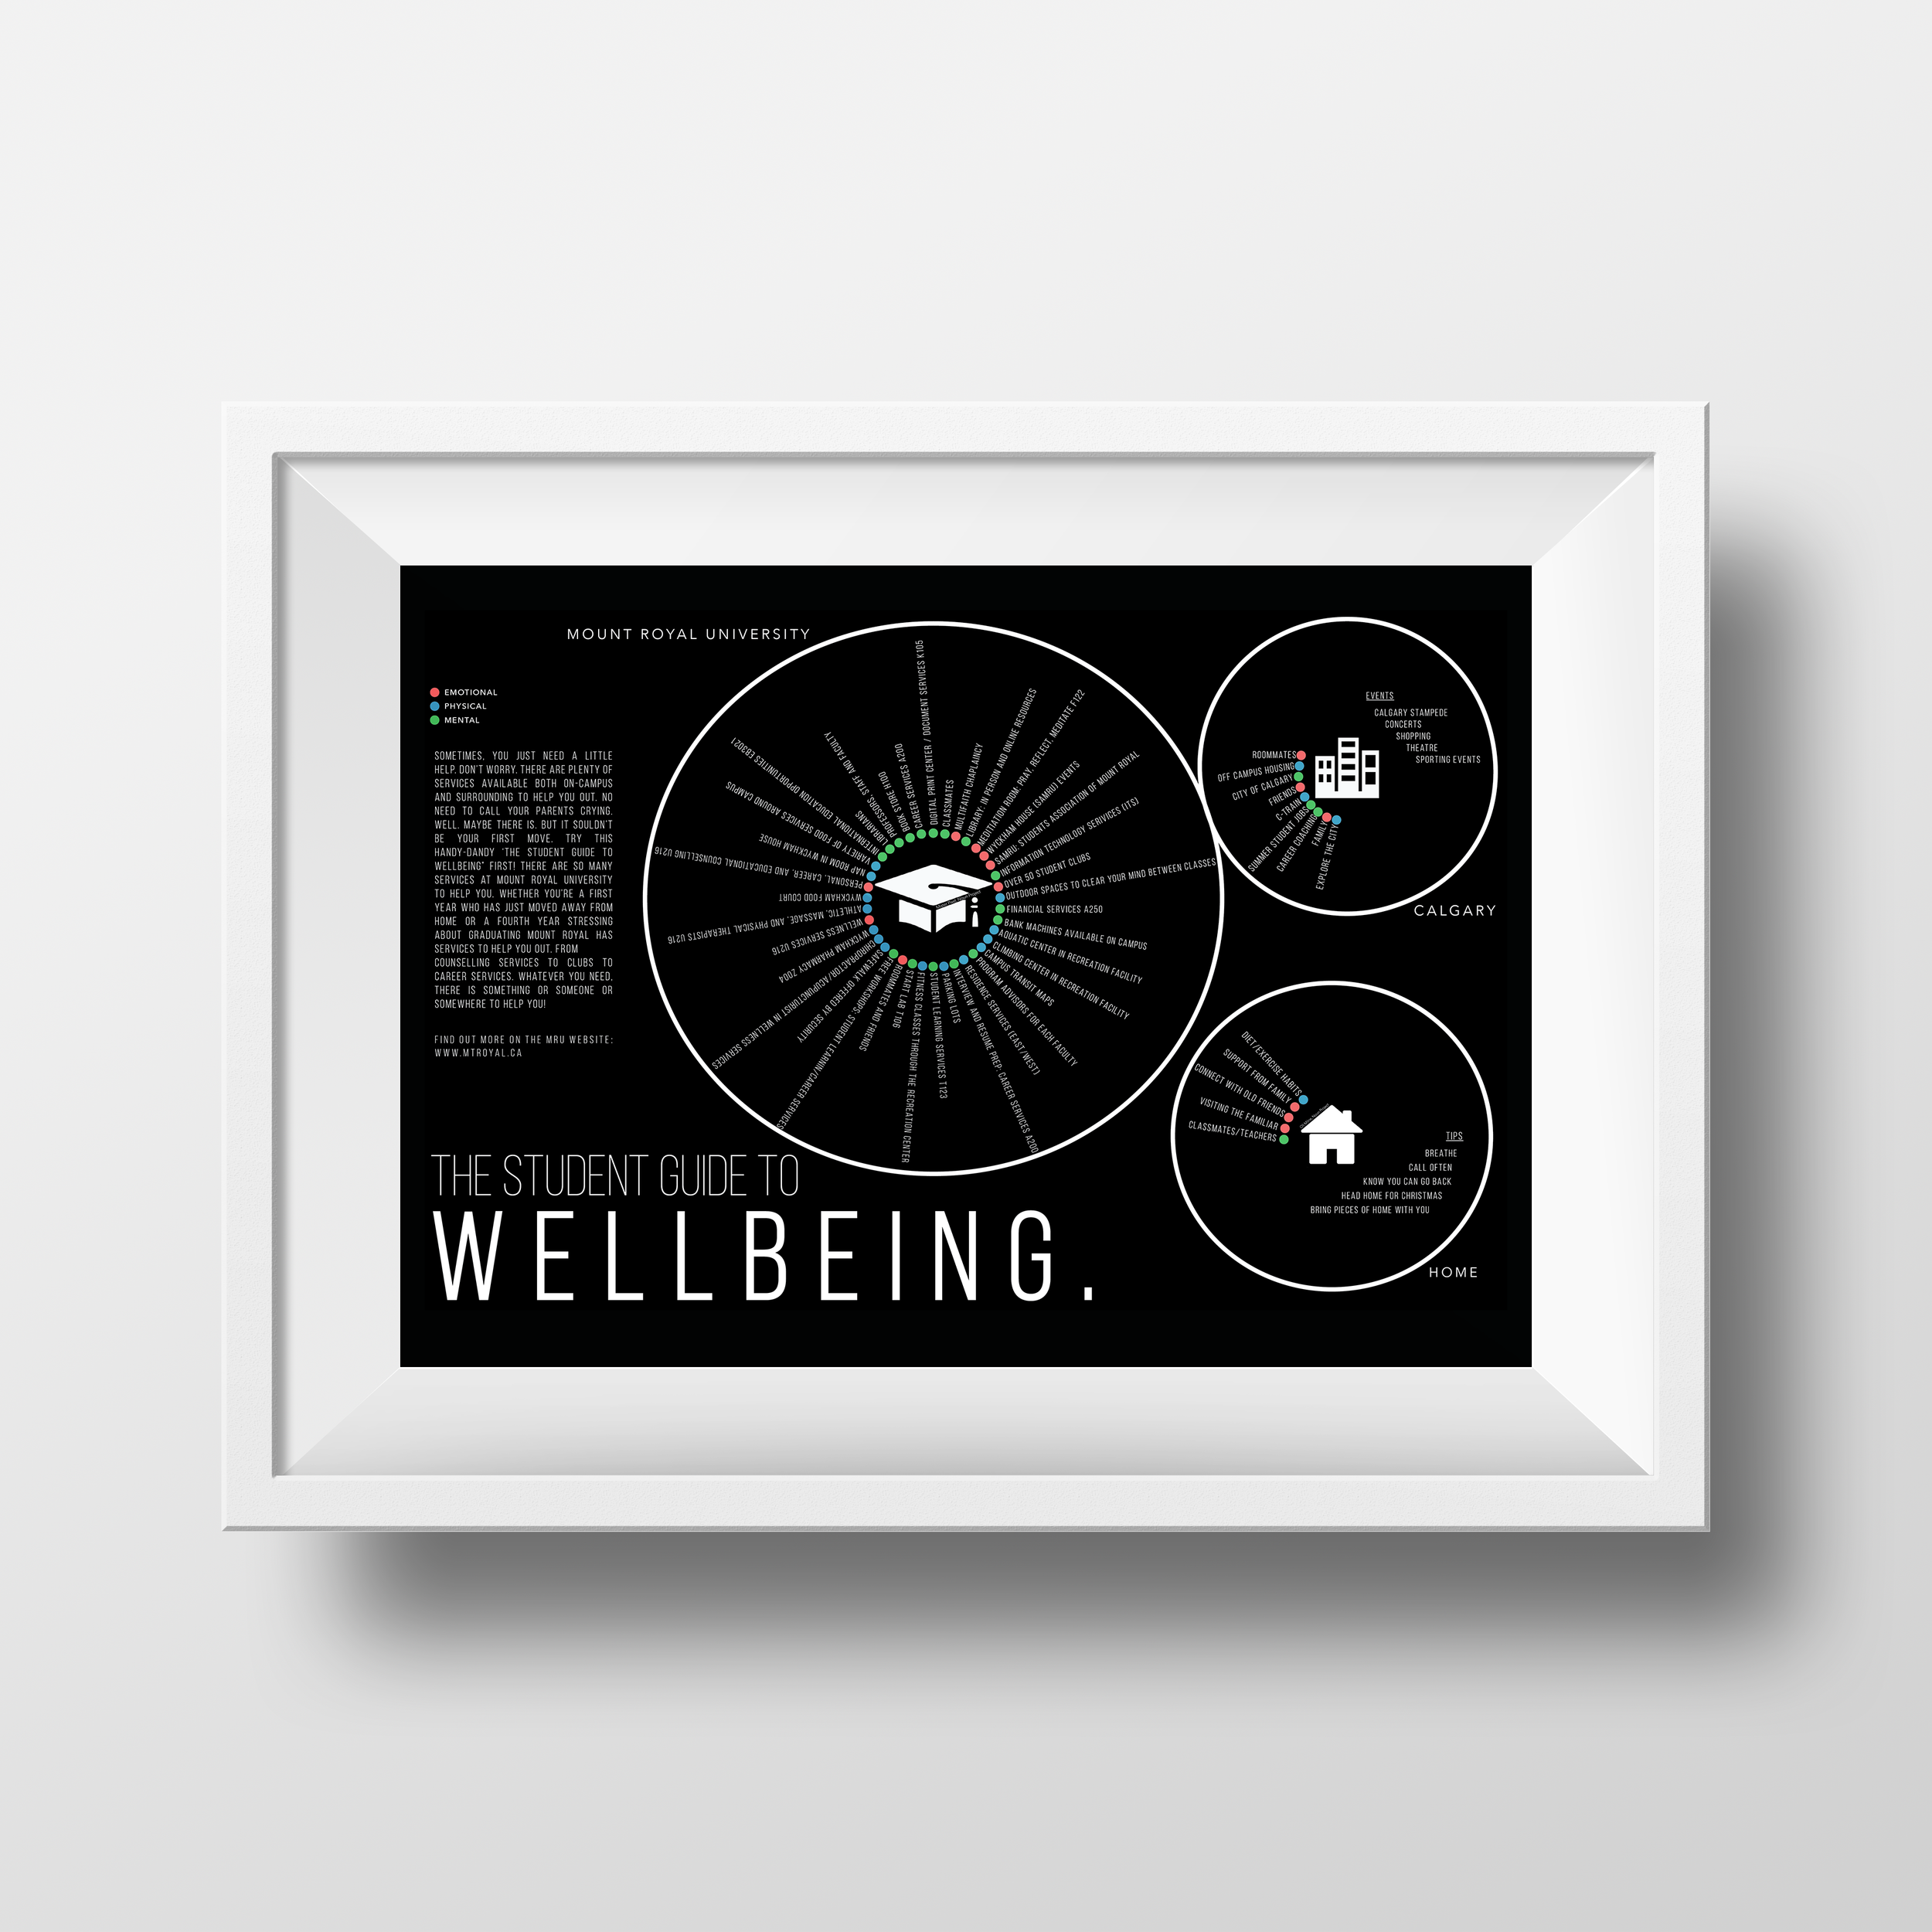 StudentGuideToWellbeing_DataVisualization_Mockup_Optimized.png